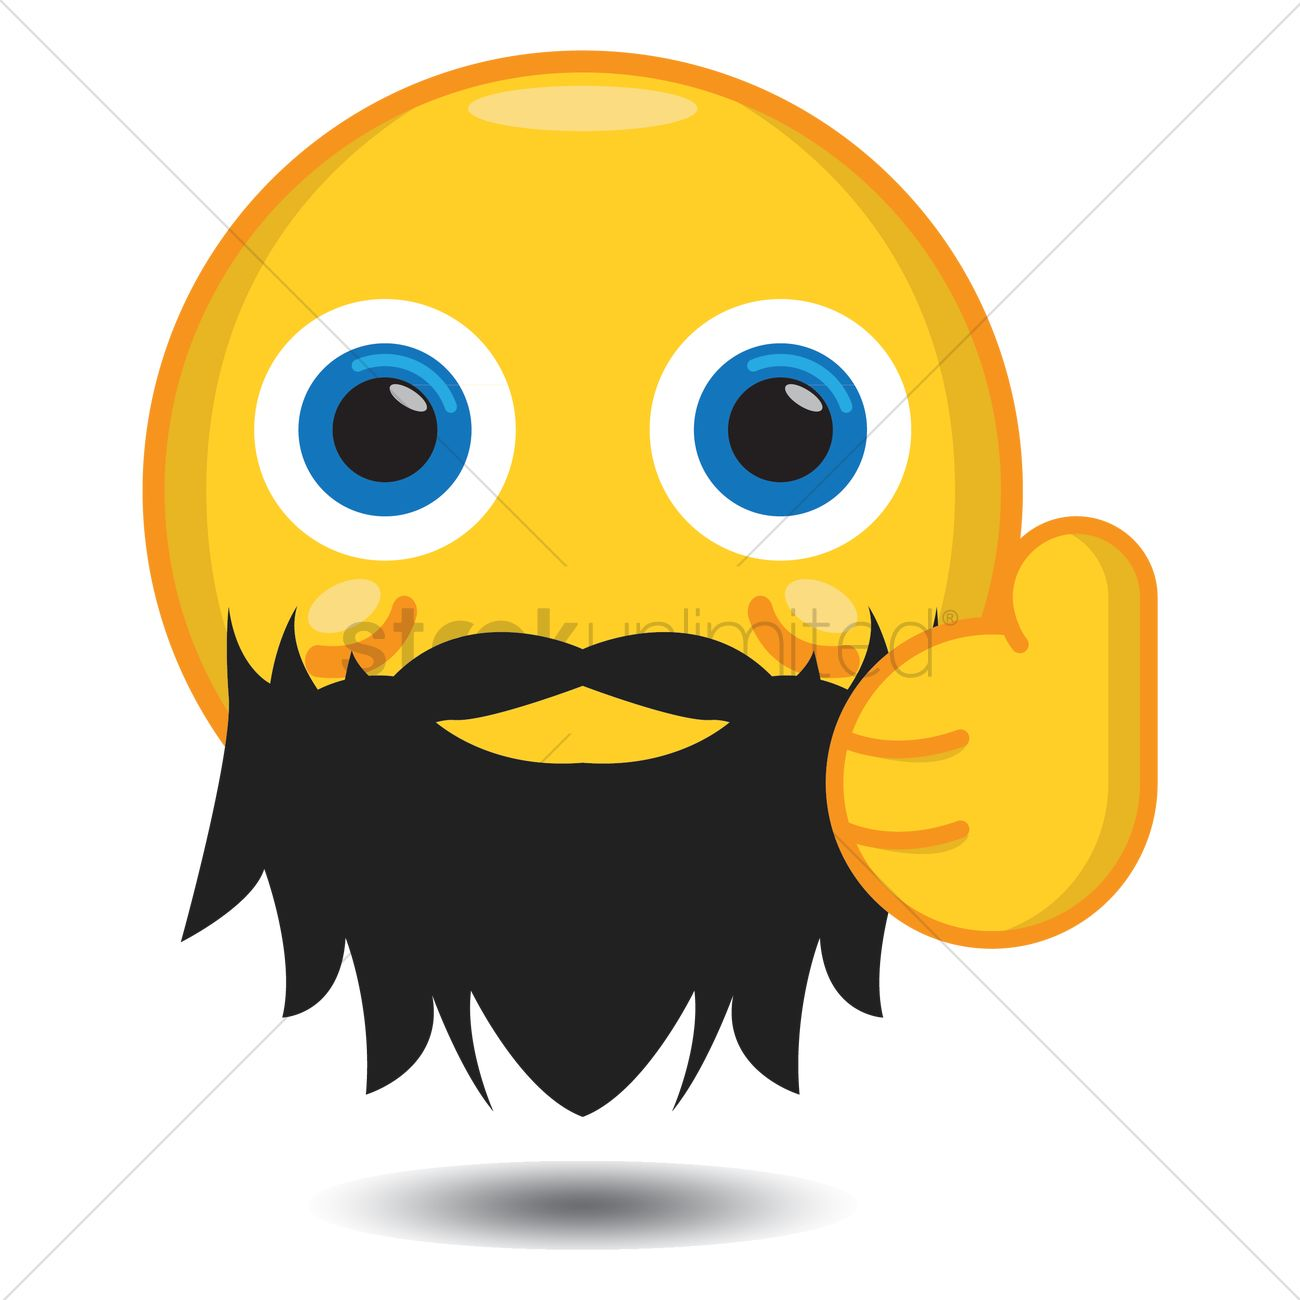 1300x1300 Smiley With Beard Showing Thumbs Up Vector Image